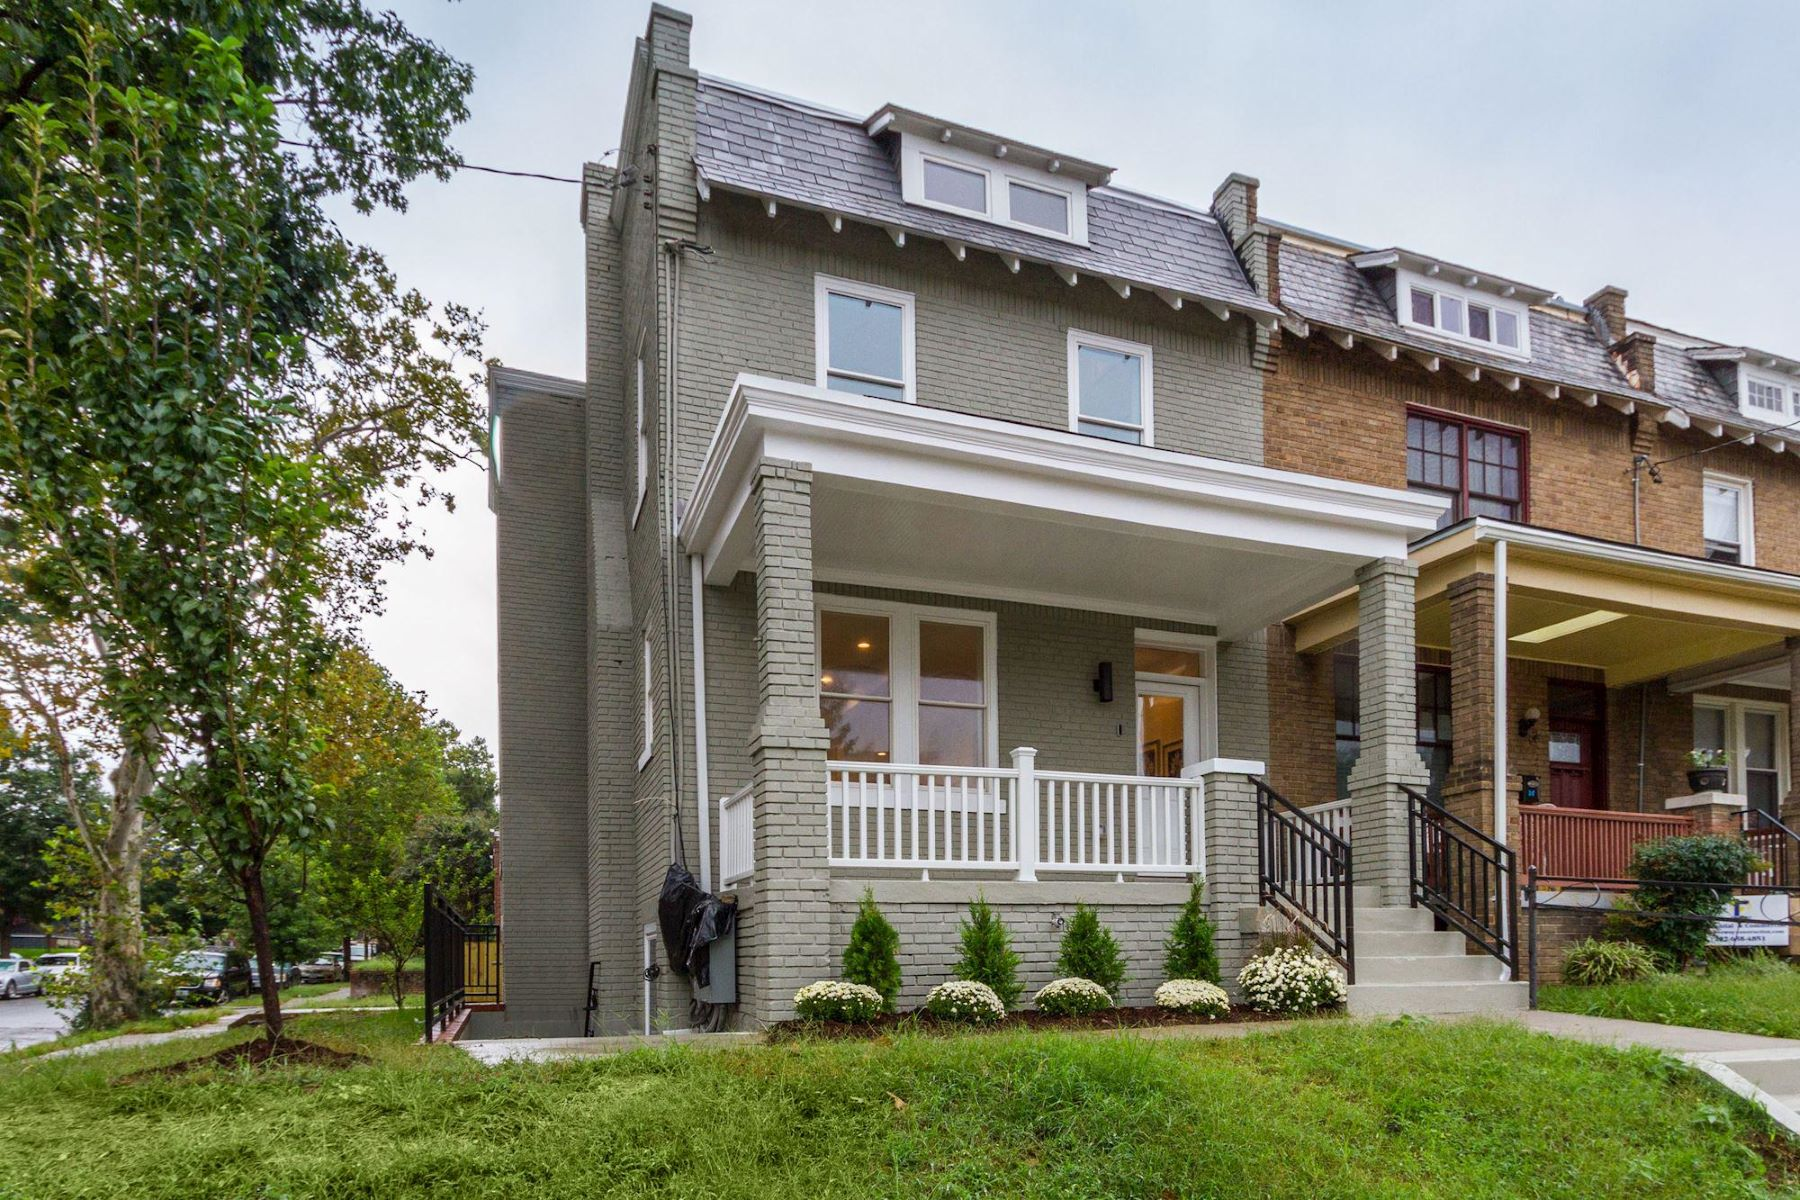 Single Family Home for Sale at 5521 3rd St NW #two 5521 3rd St NW #two Washington, District Of Columbia 20011 United States